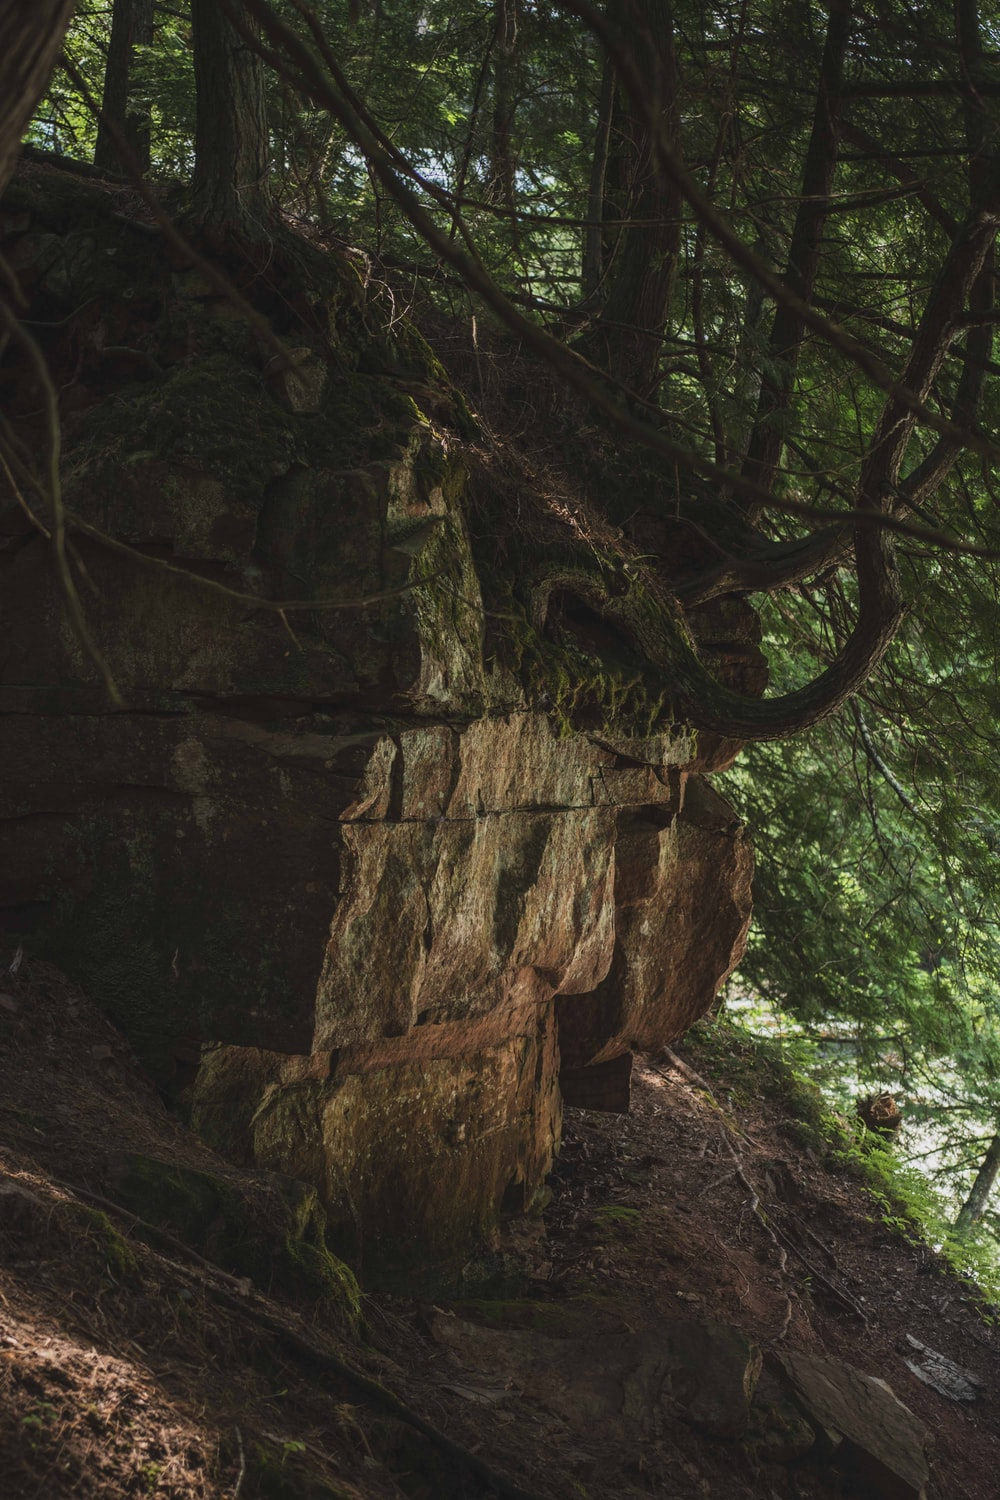 brown rock formation with green moss